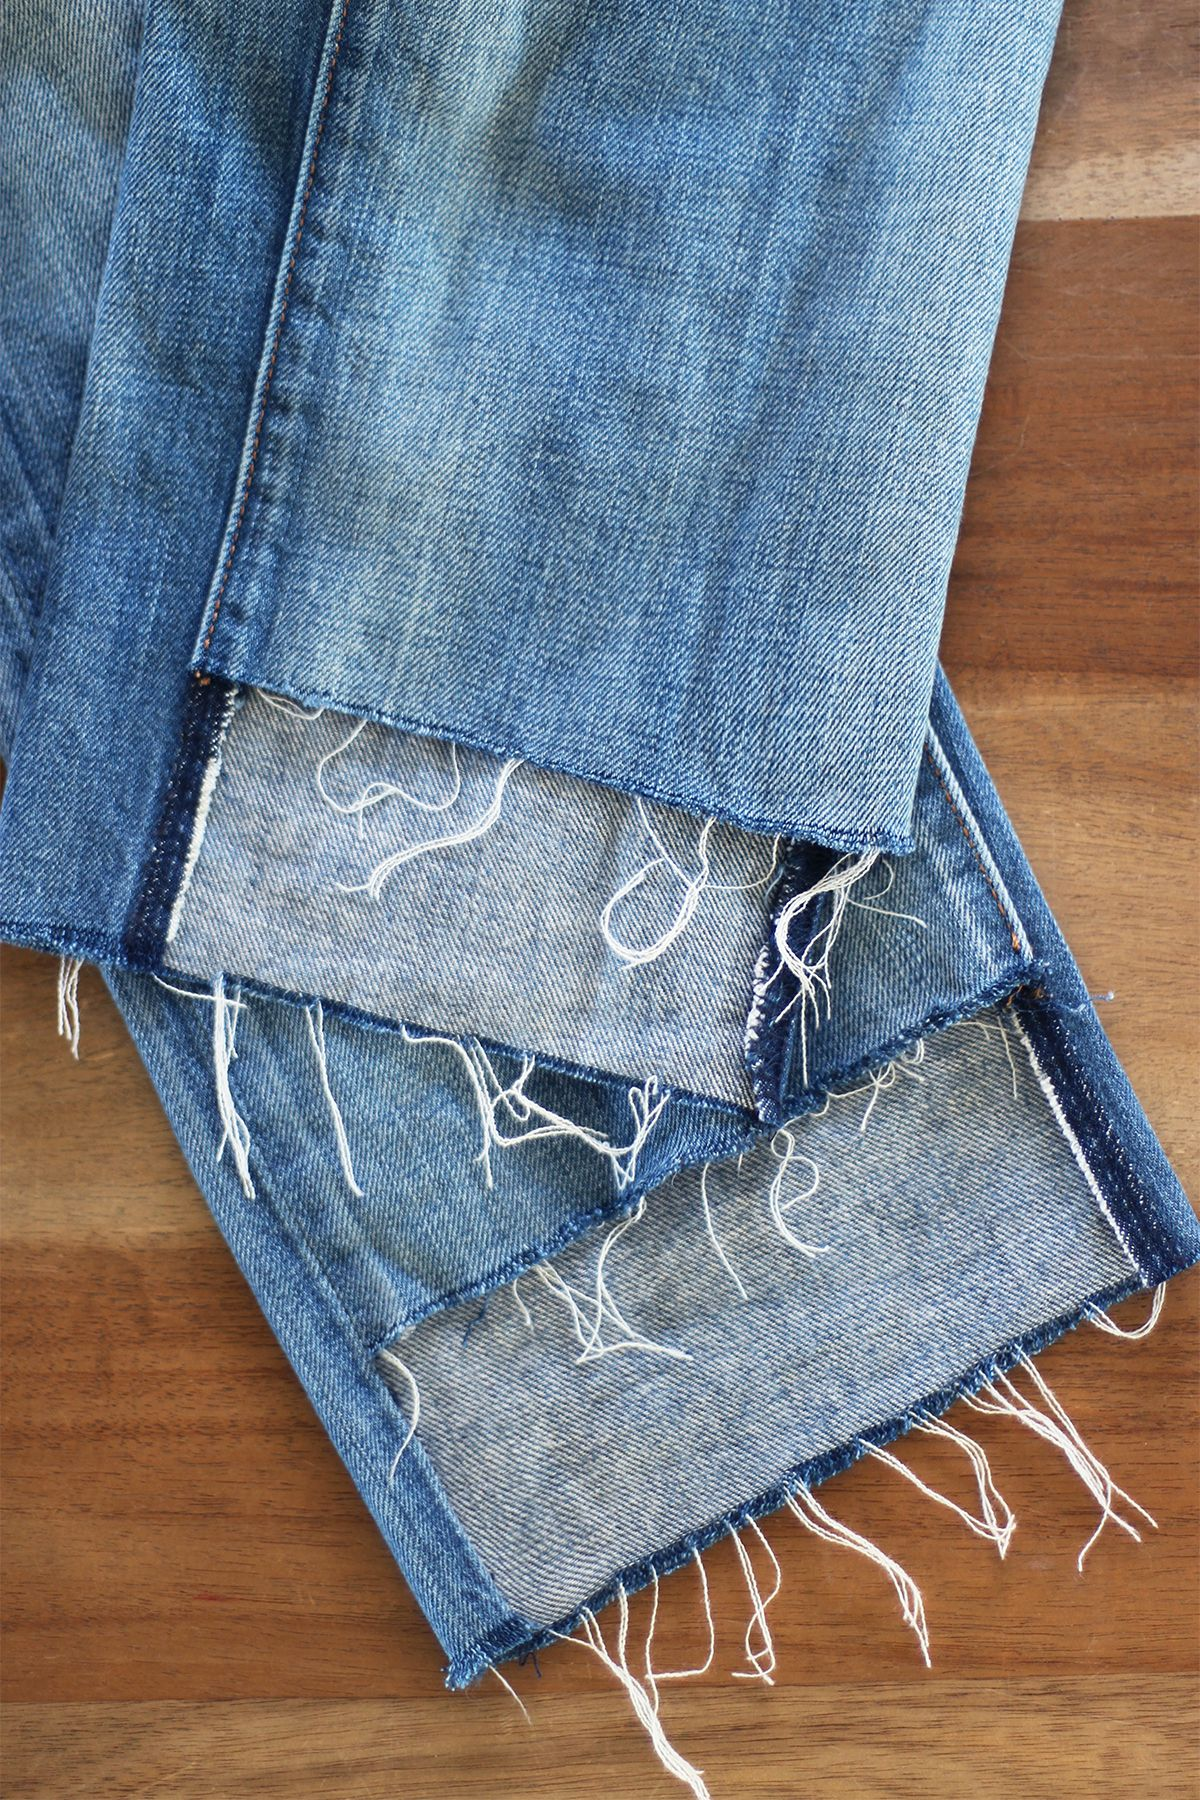 Diy uneven denim hem london fashion fashion weeks and diy jeans many of you asked about the jeans i wore in last weeks diy so i thought solutioingenieria Image collections